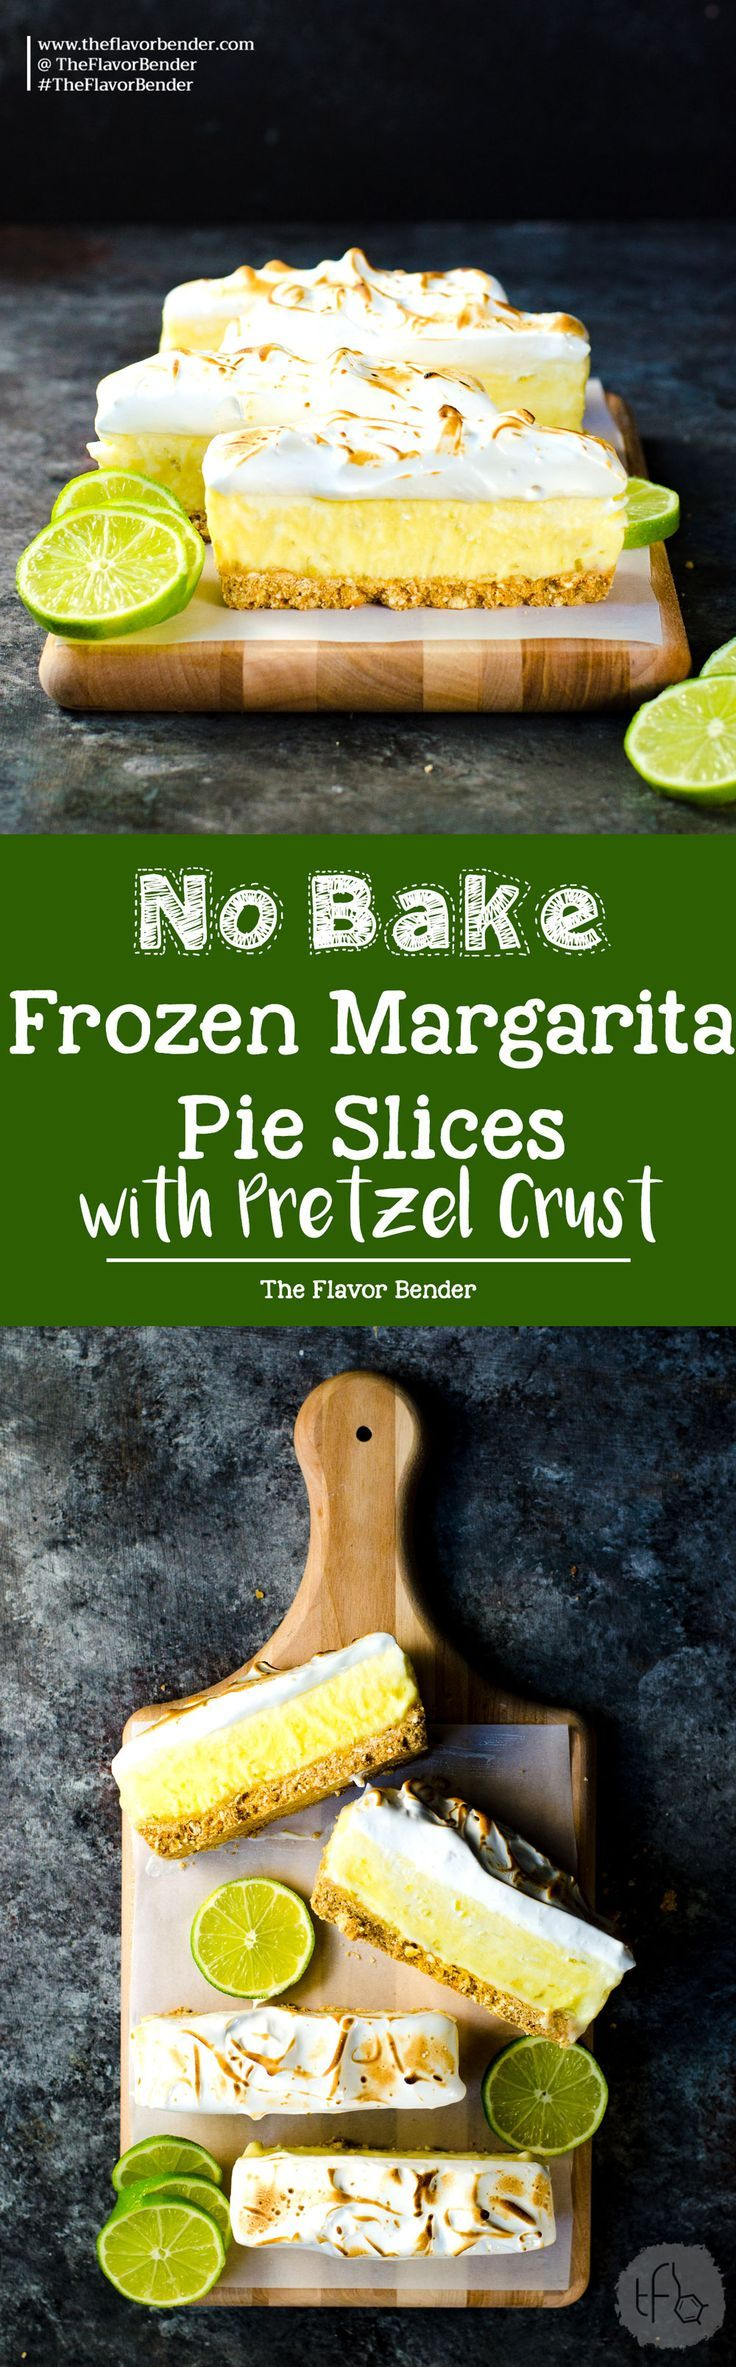 No Bake Frozen Margarita Pie Slice with a Pretzel crust -A boozy and refreshing summer dessertwith perfectly balanced sweet, tart and salty flavors. Made with lime curd, and tequila this is a cocktail, a dessert and a summer fiesta in one glorious frozen margarita pie slice! And it's deceptively easy to make too!   via @theflavorbender